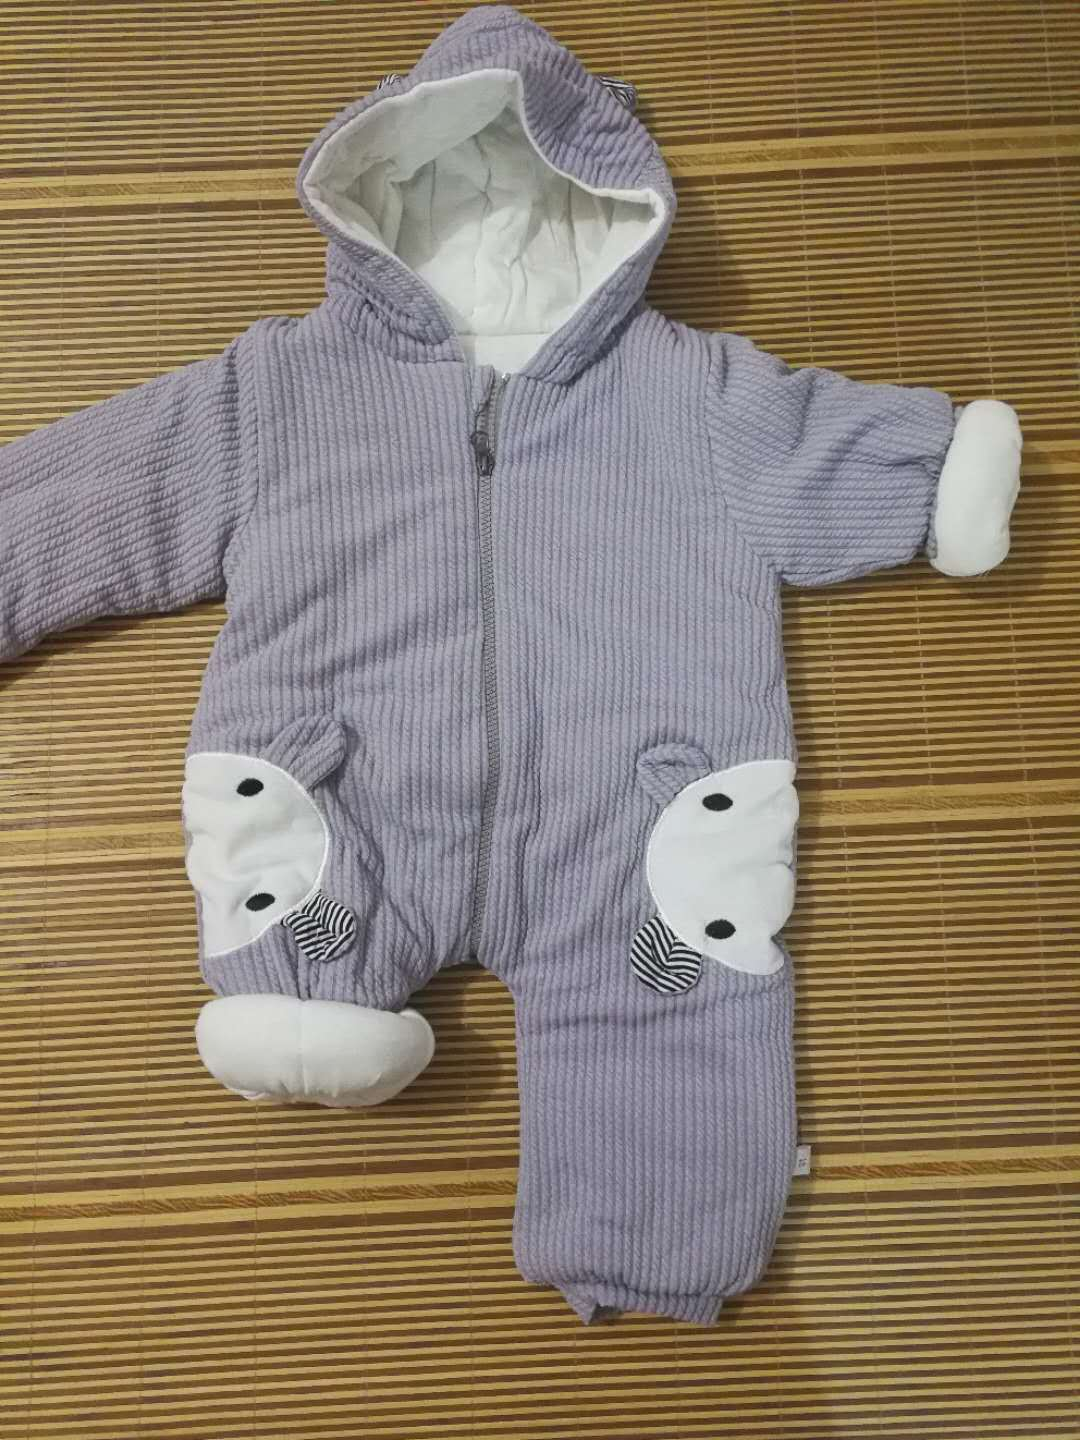 H68e3684513d14d57a01d3aafc0a571d9I 2019 New Russia Baby costume rompers Clothes cold Winter Boy Girl Garment Thicken Warm Comfortable Pure Cotton coat jacket kids